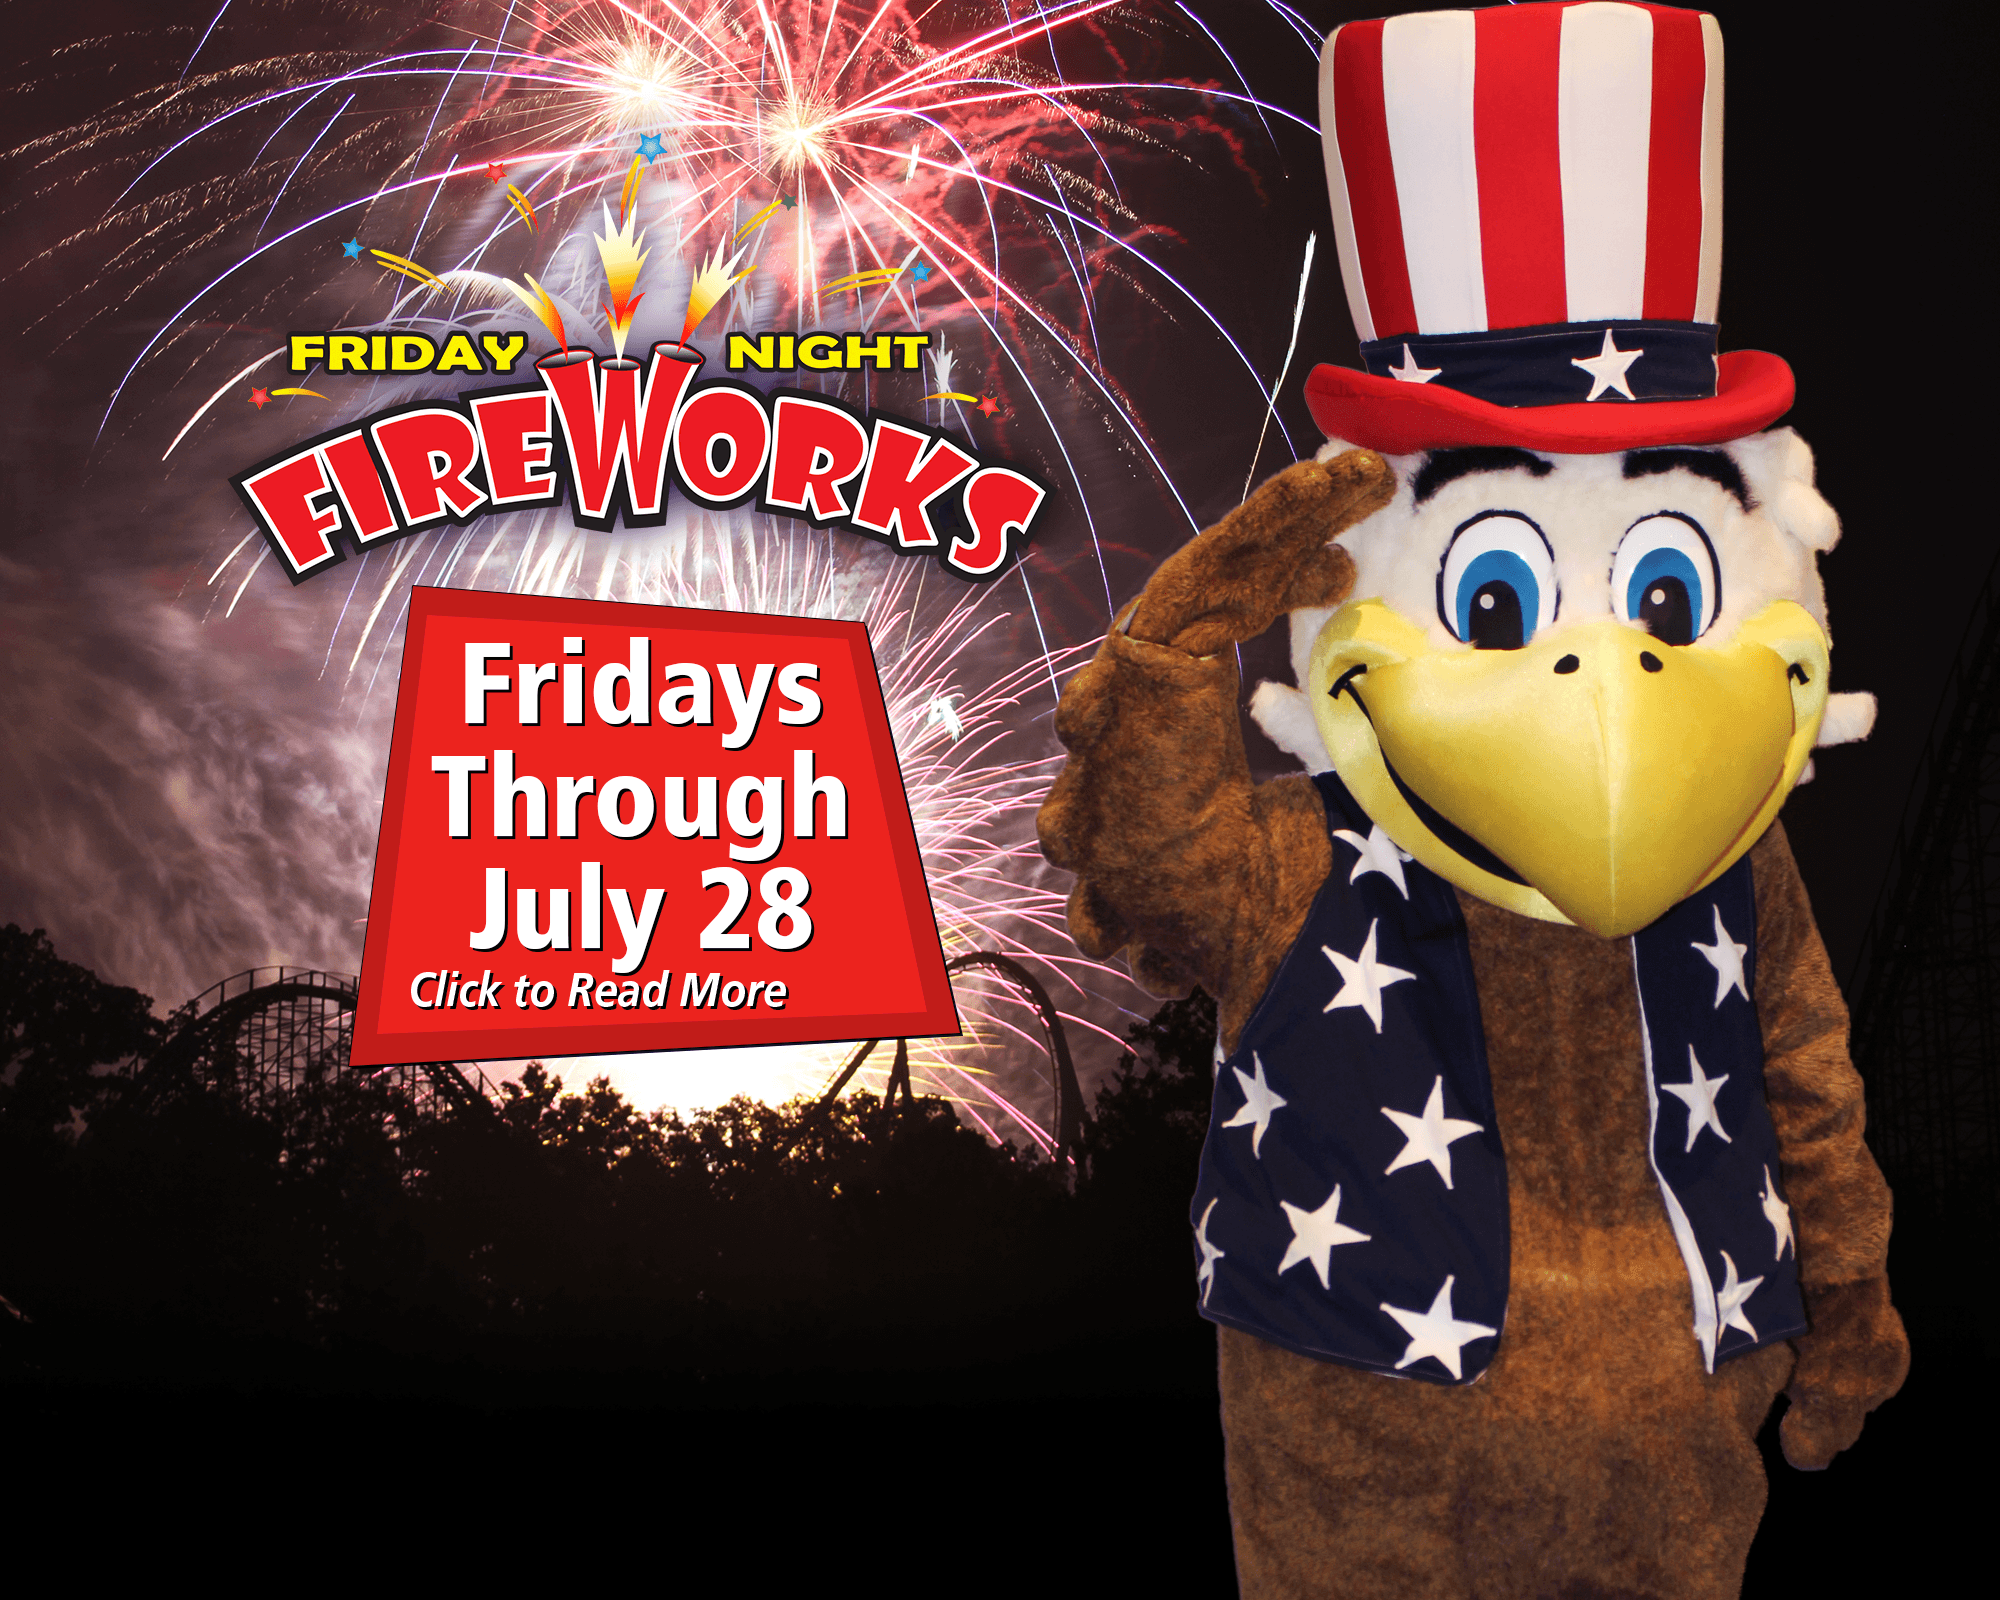 Friday Night Fireworks - Through July 28